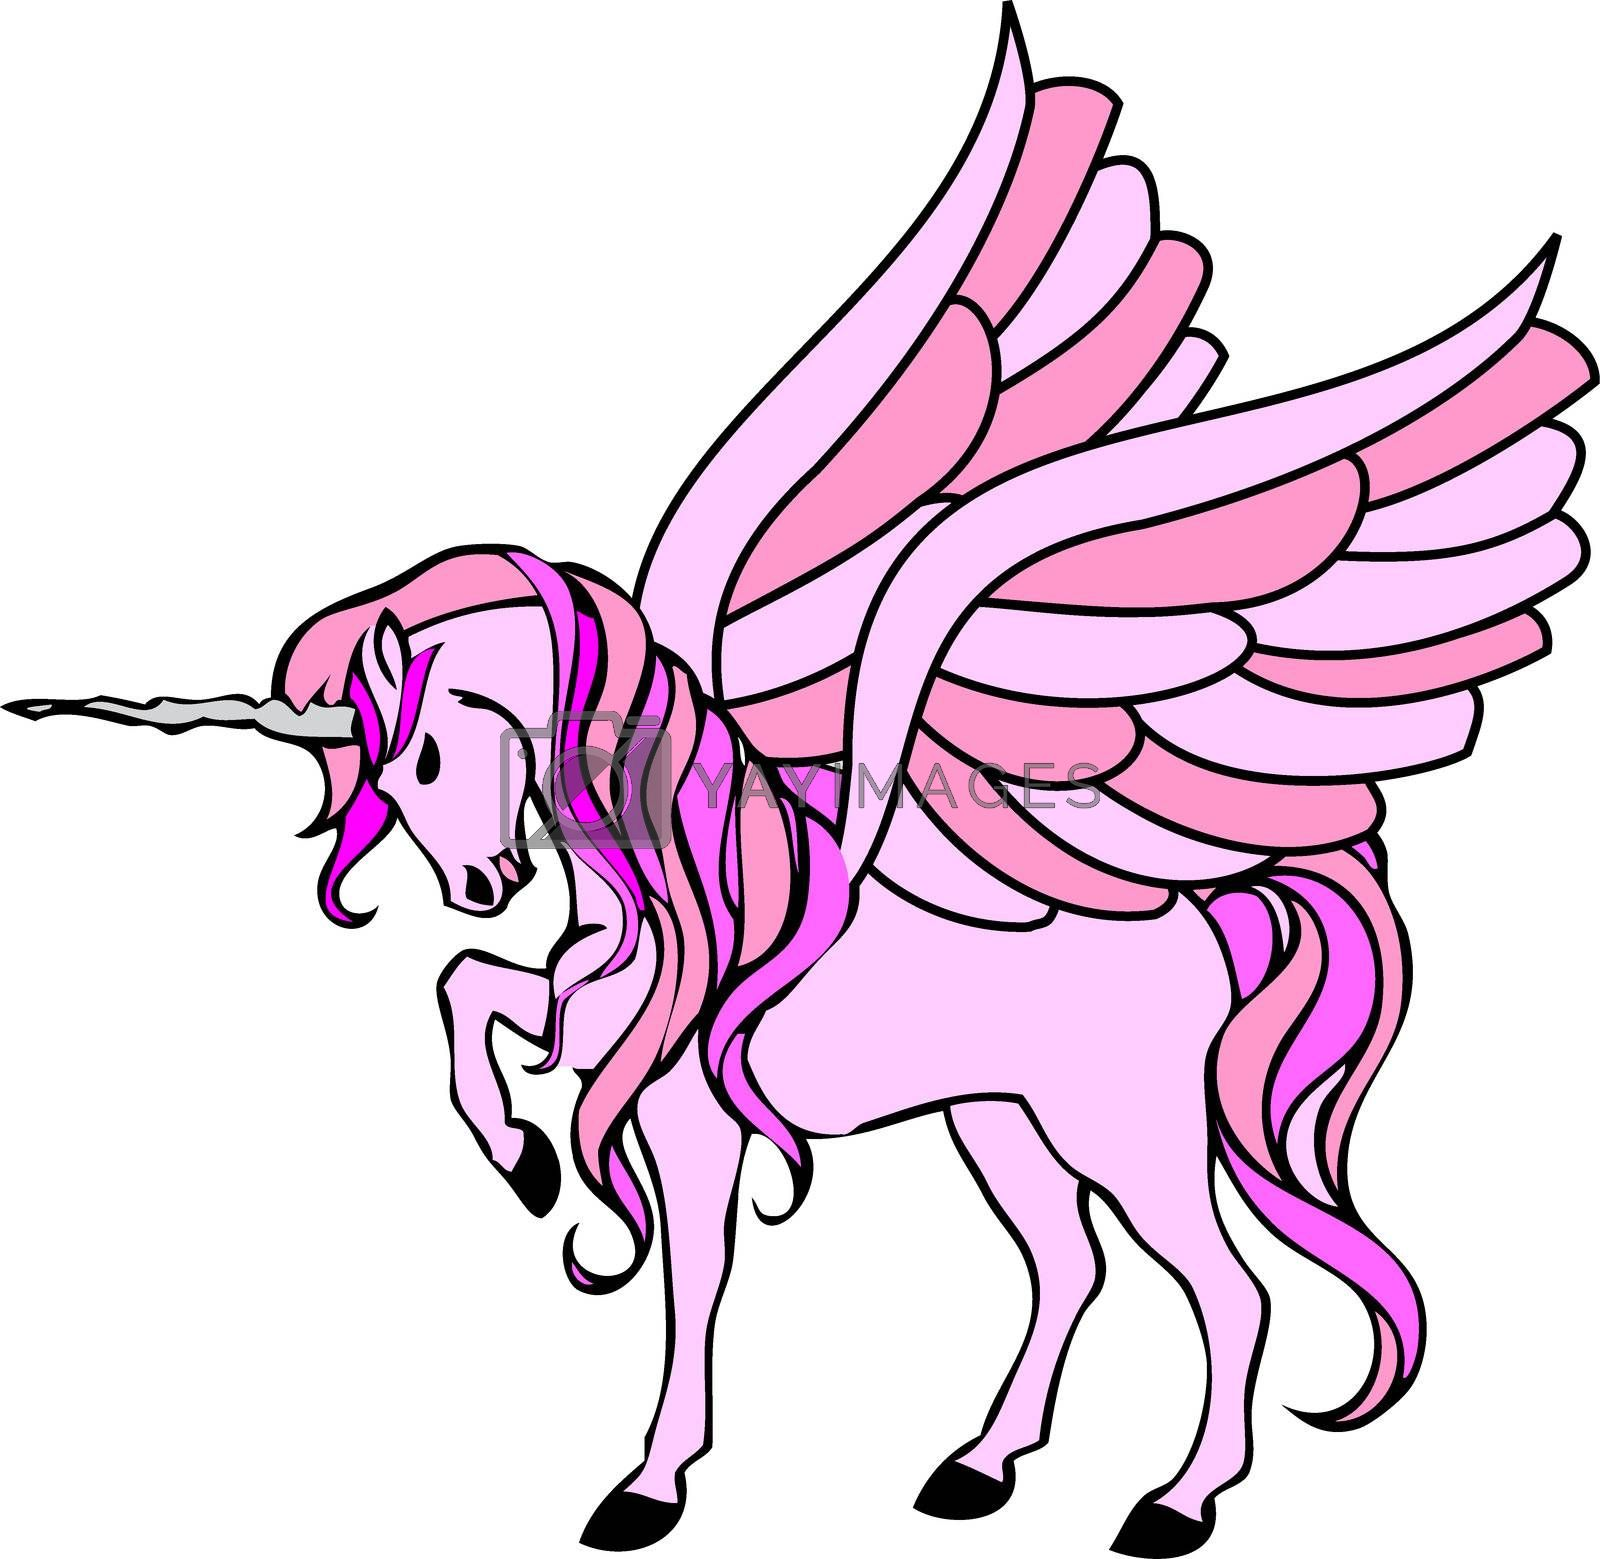 illustration of a pink unicorn with wings